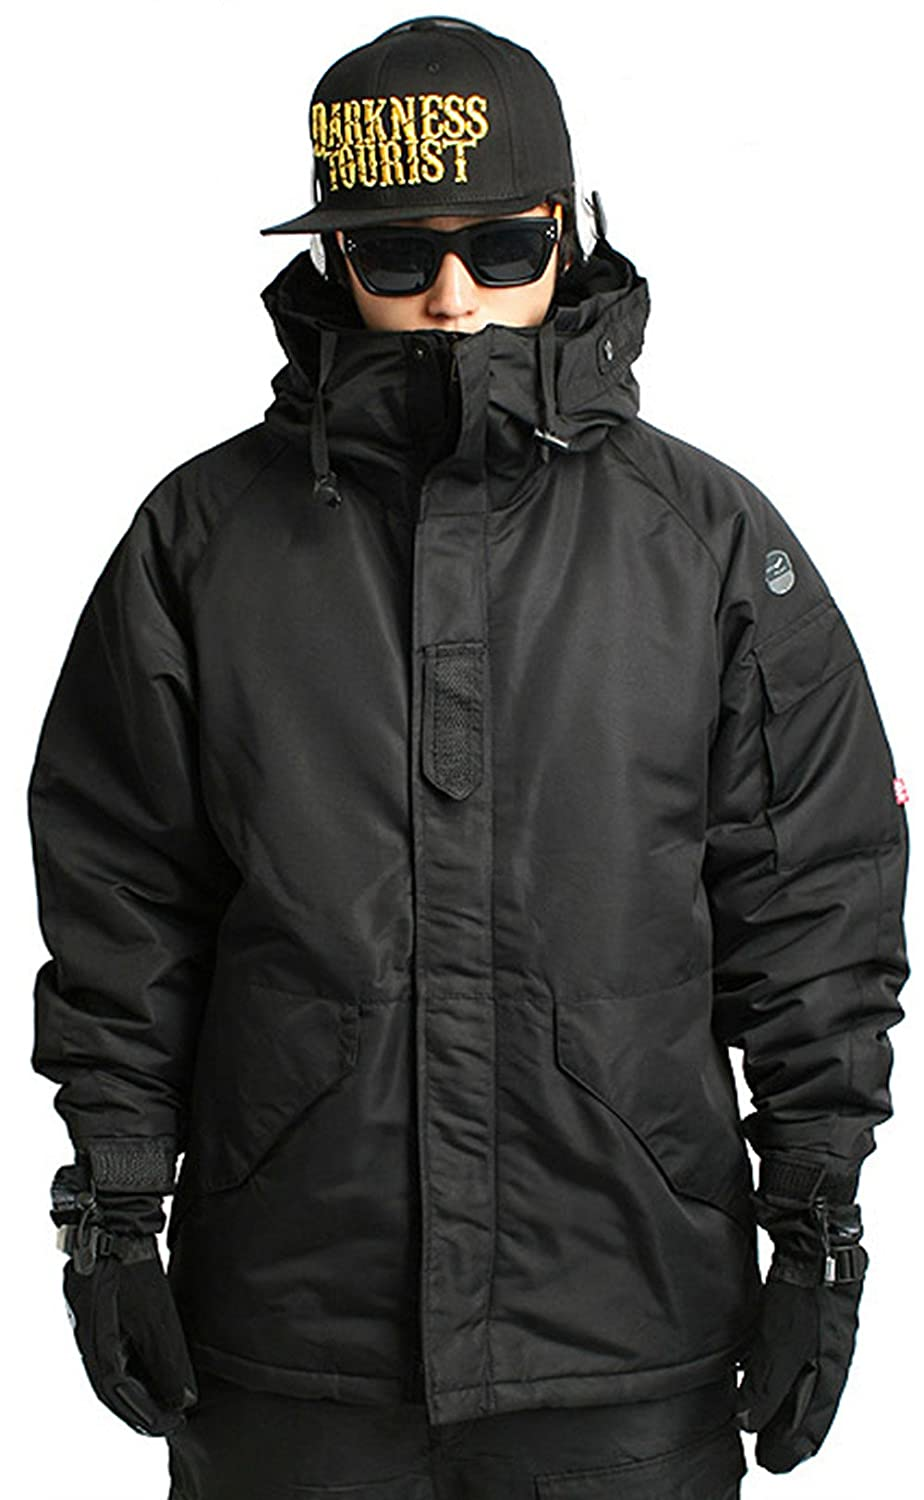 South Play Mens Waterproof Ski Snowboard Wear Jacket Jumper Solid Black